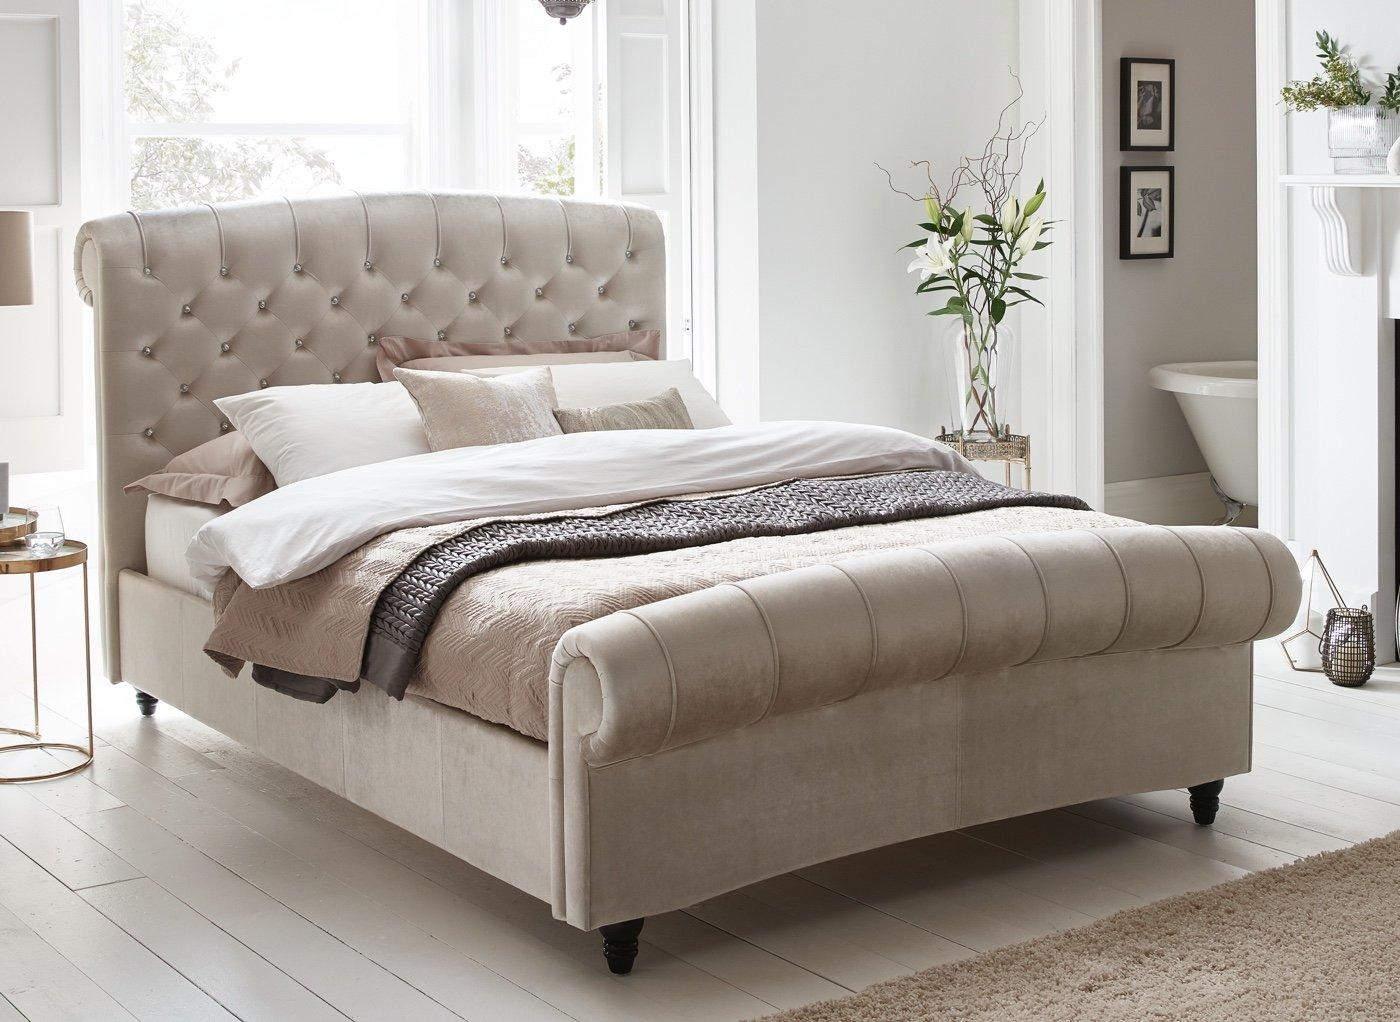 ellis-velvet-finish-upholstered-bed